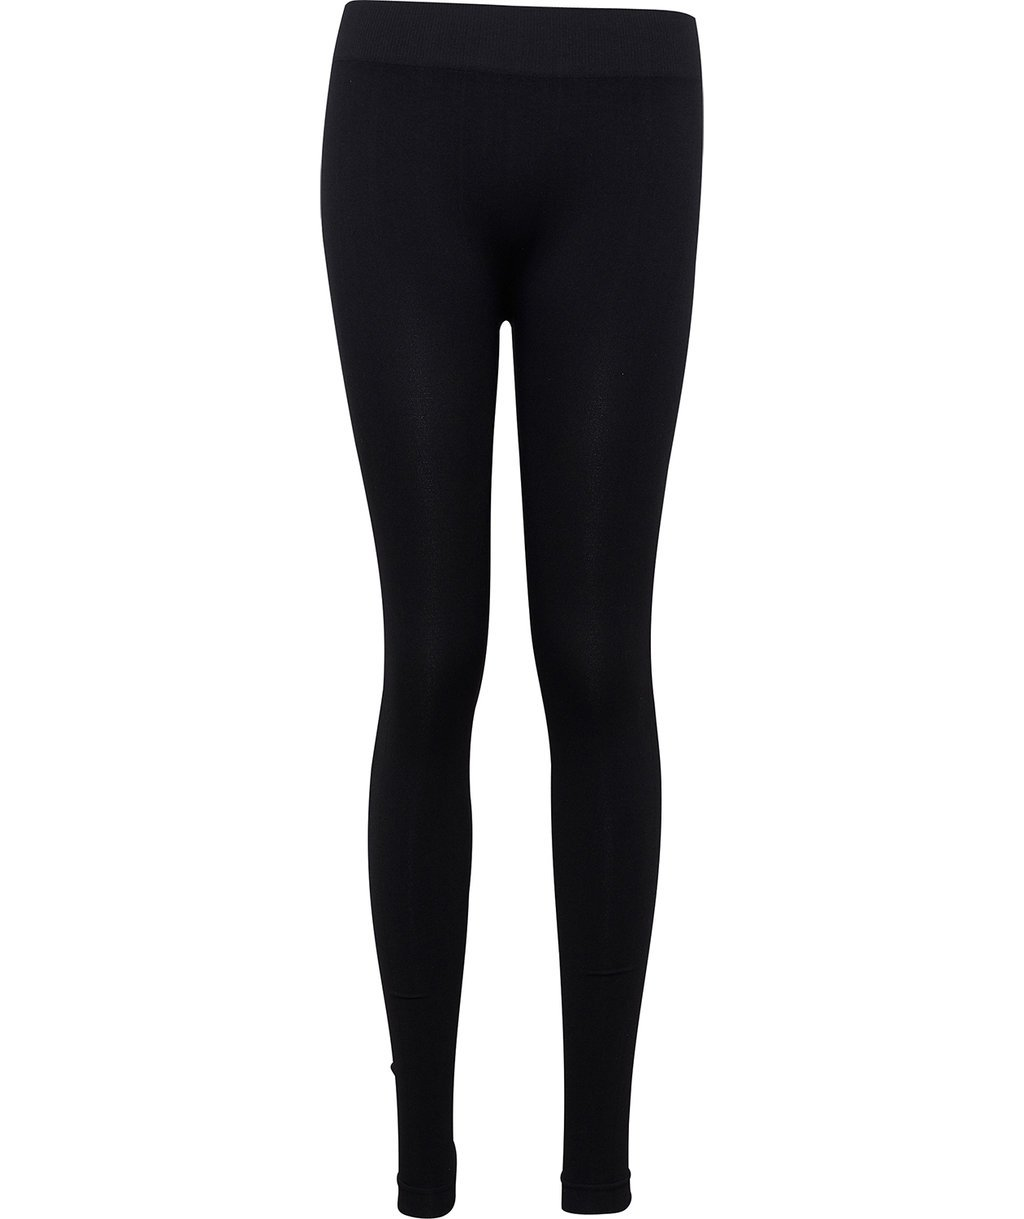 Decoy Seamless Leggings, Svart